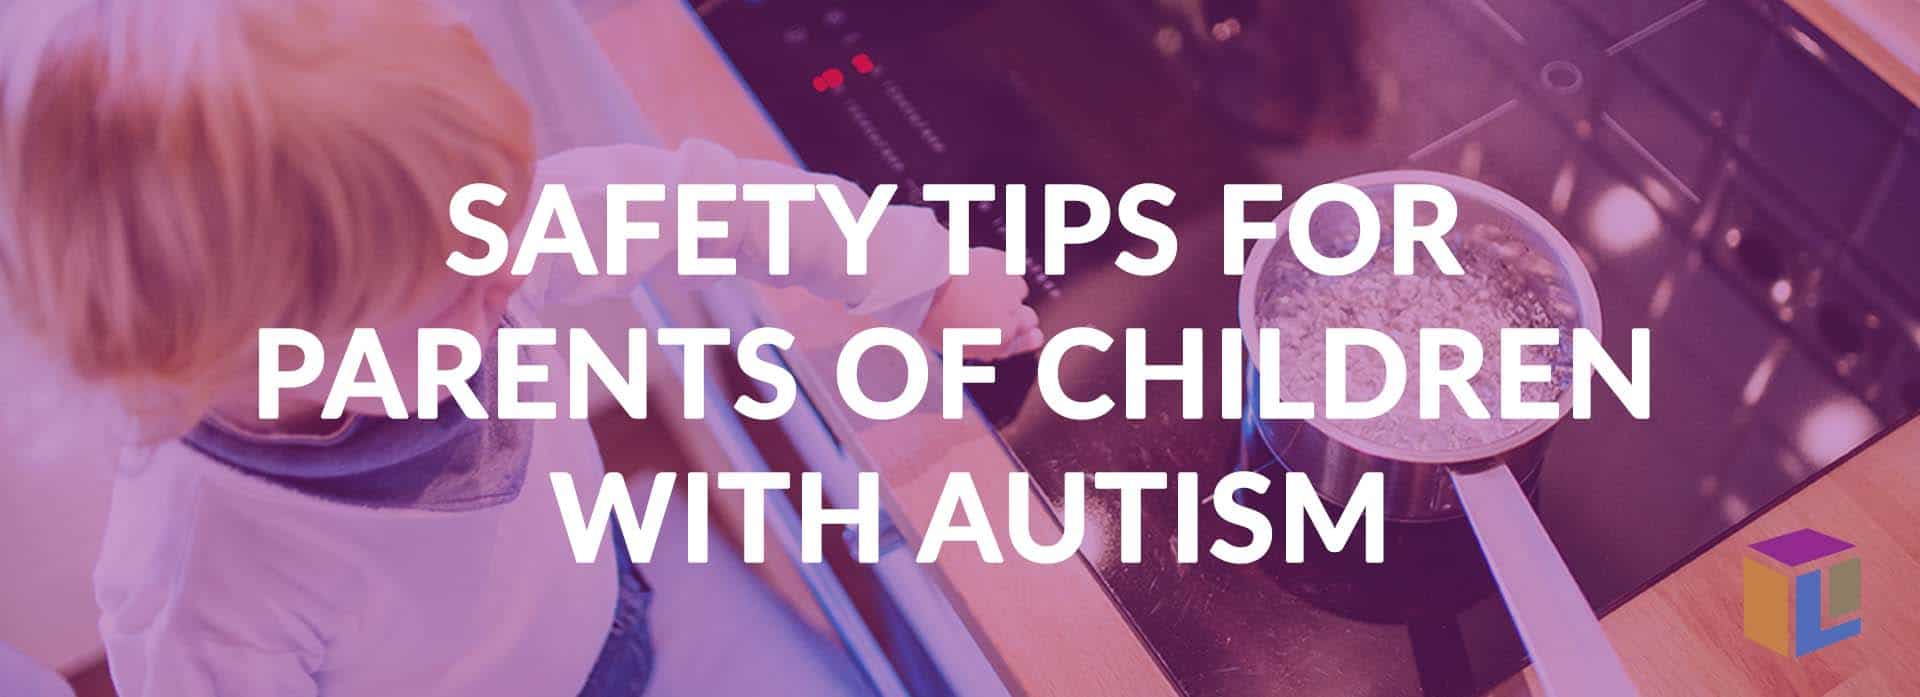 Safety Tips For Parents Of Children With Autism